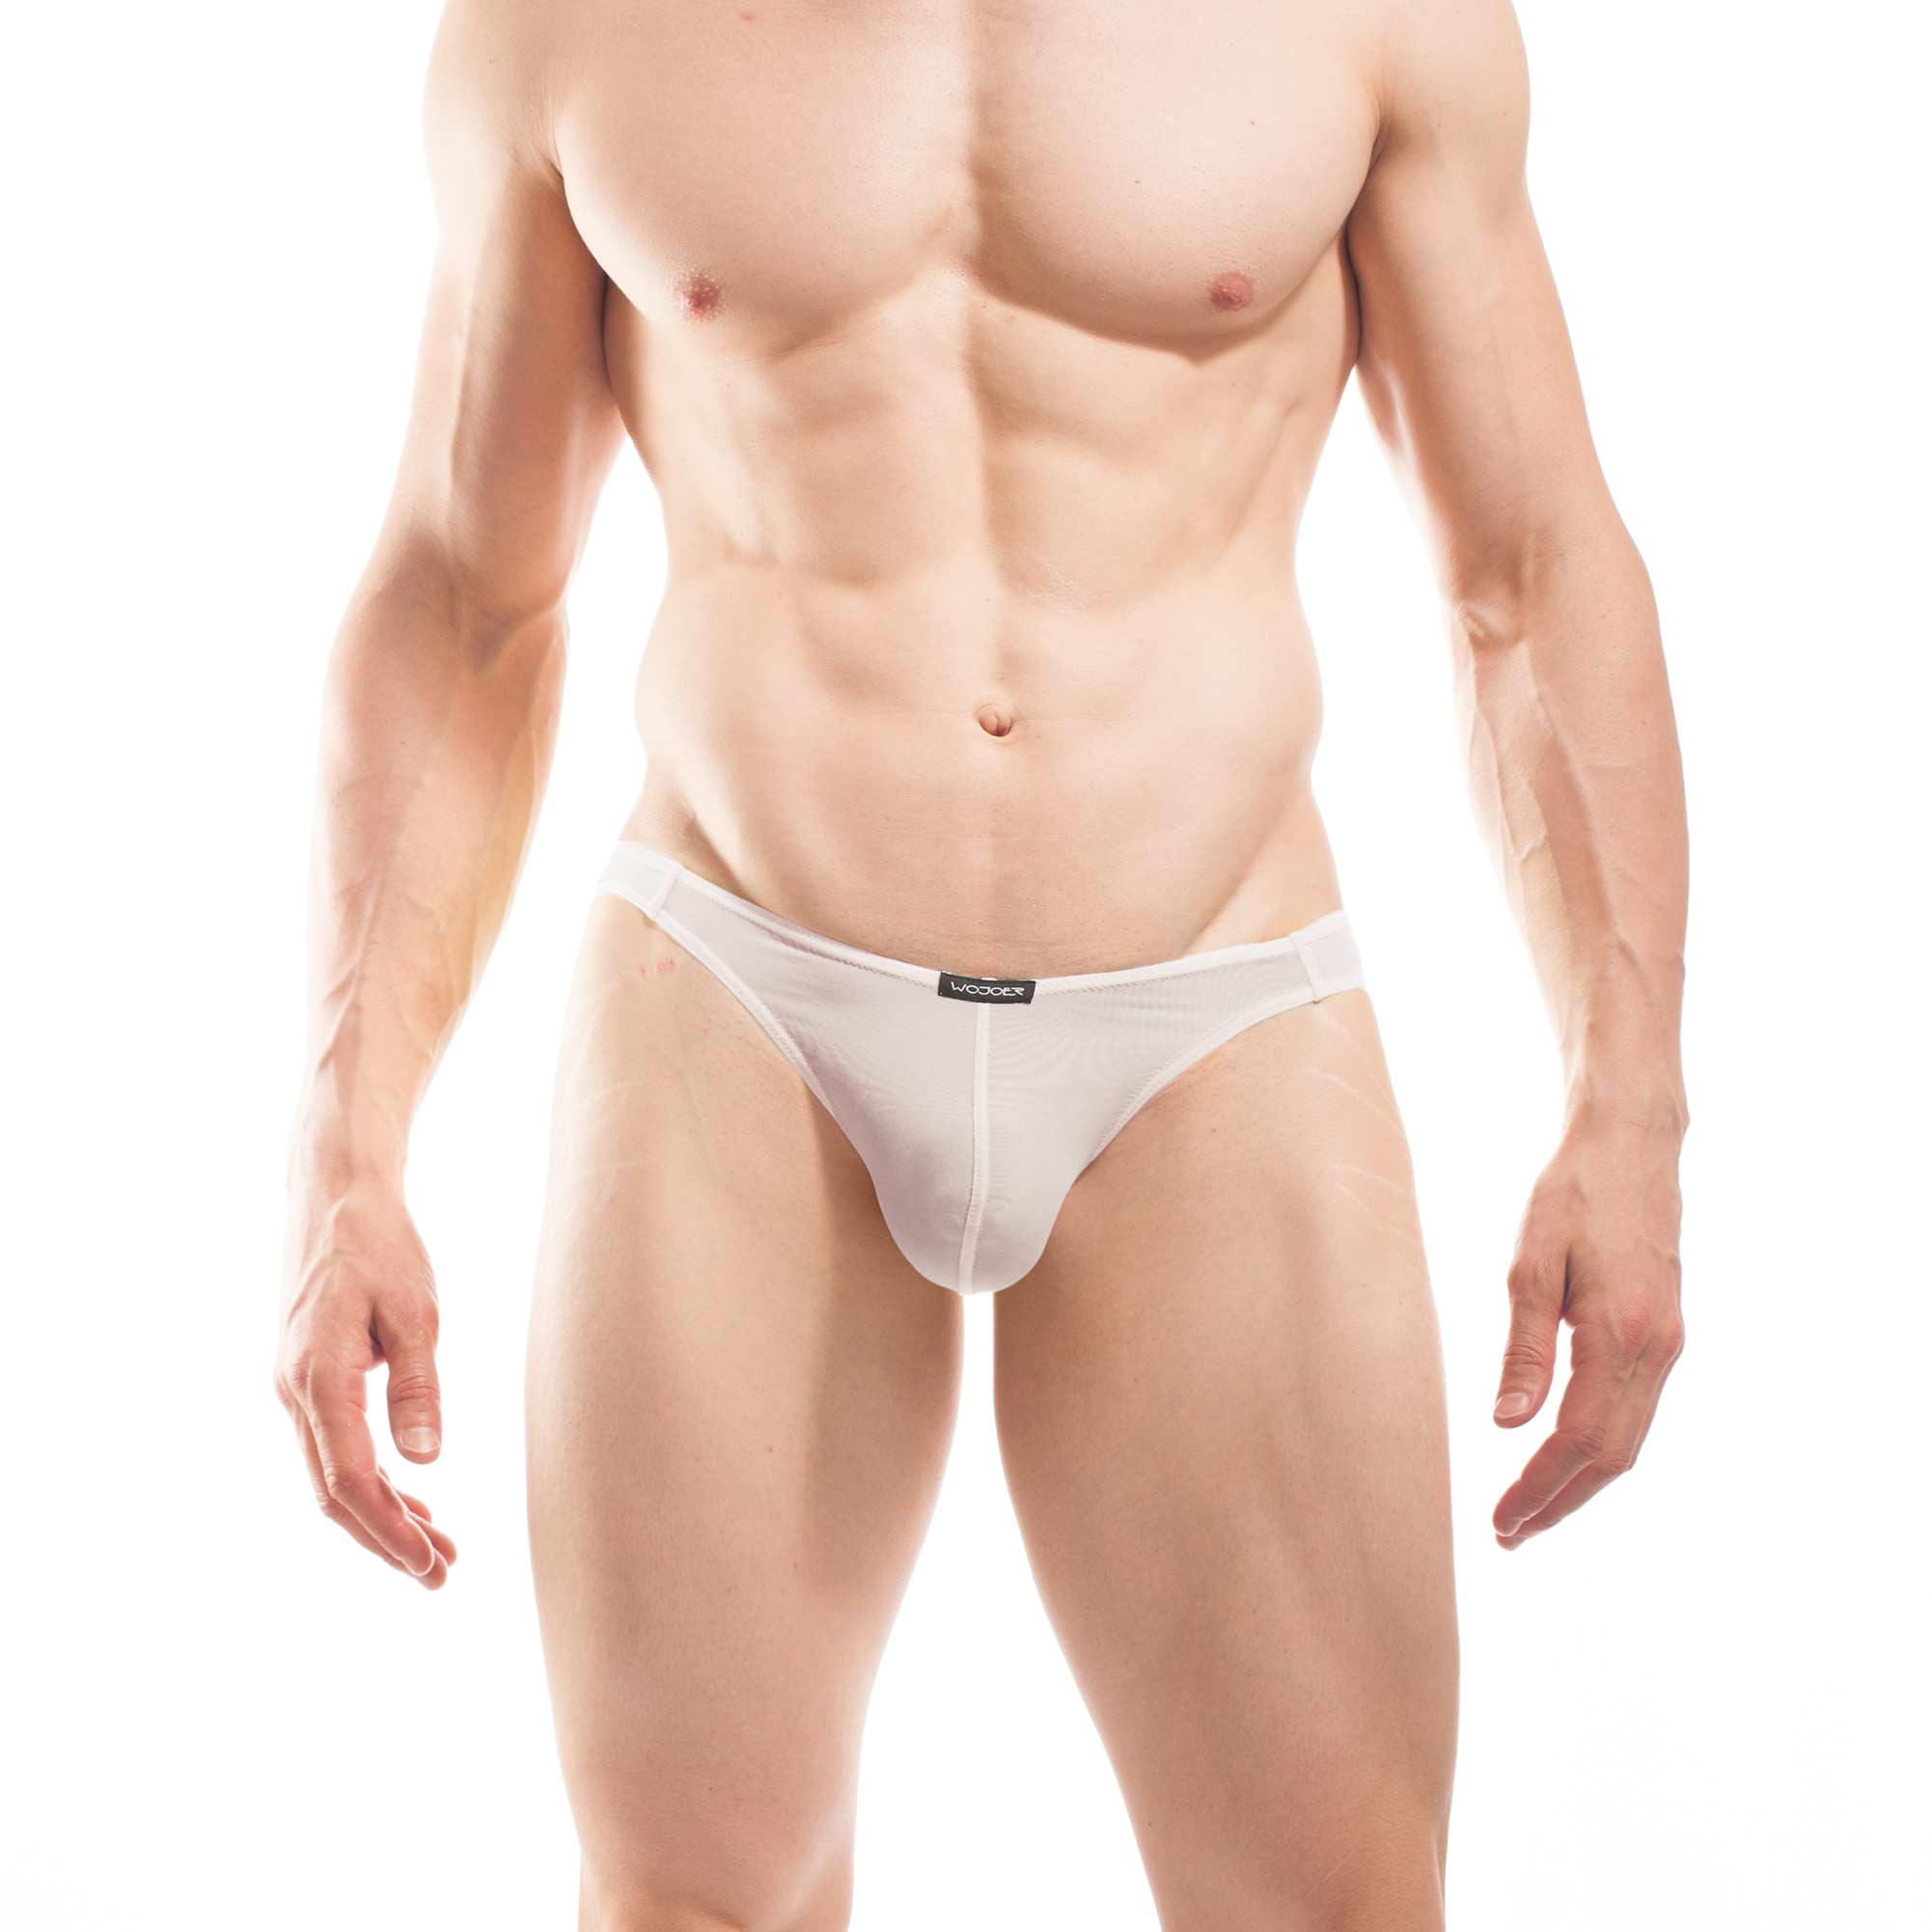 Basic Slip, BEUN Basic, Beach and underwear, badetauglich, Cheeky Slip, Brief, Pants, Shorts, Unterhose, crema, creme, weiß